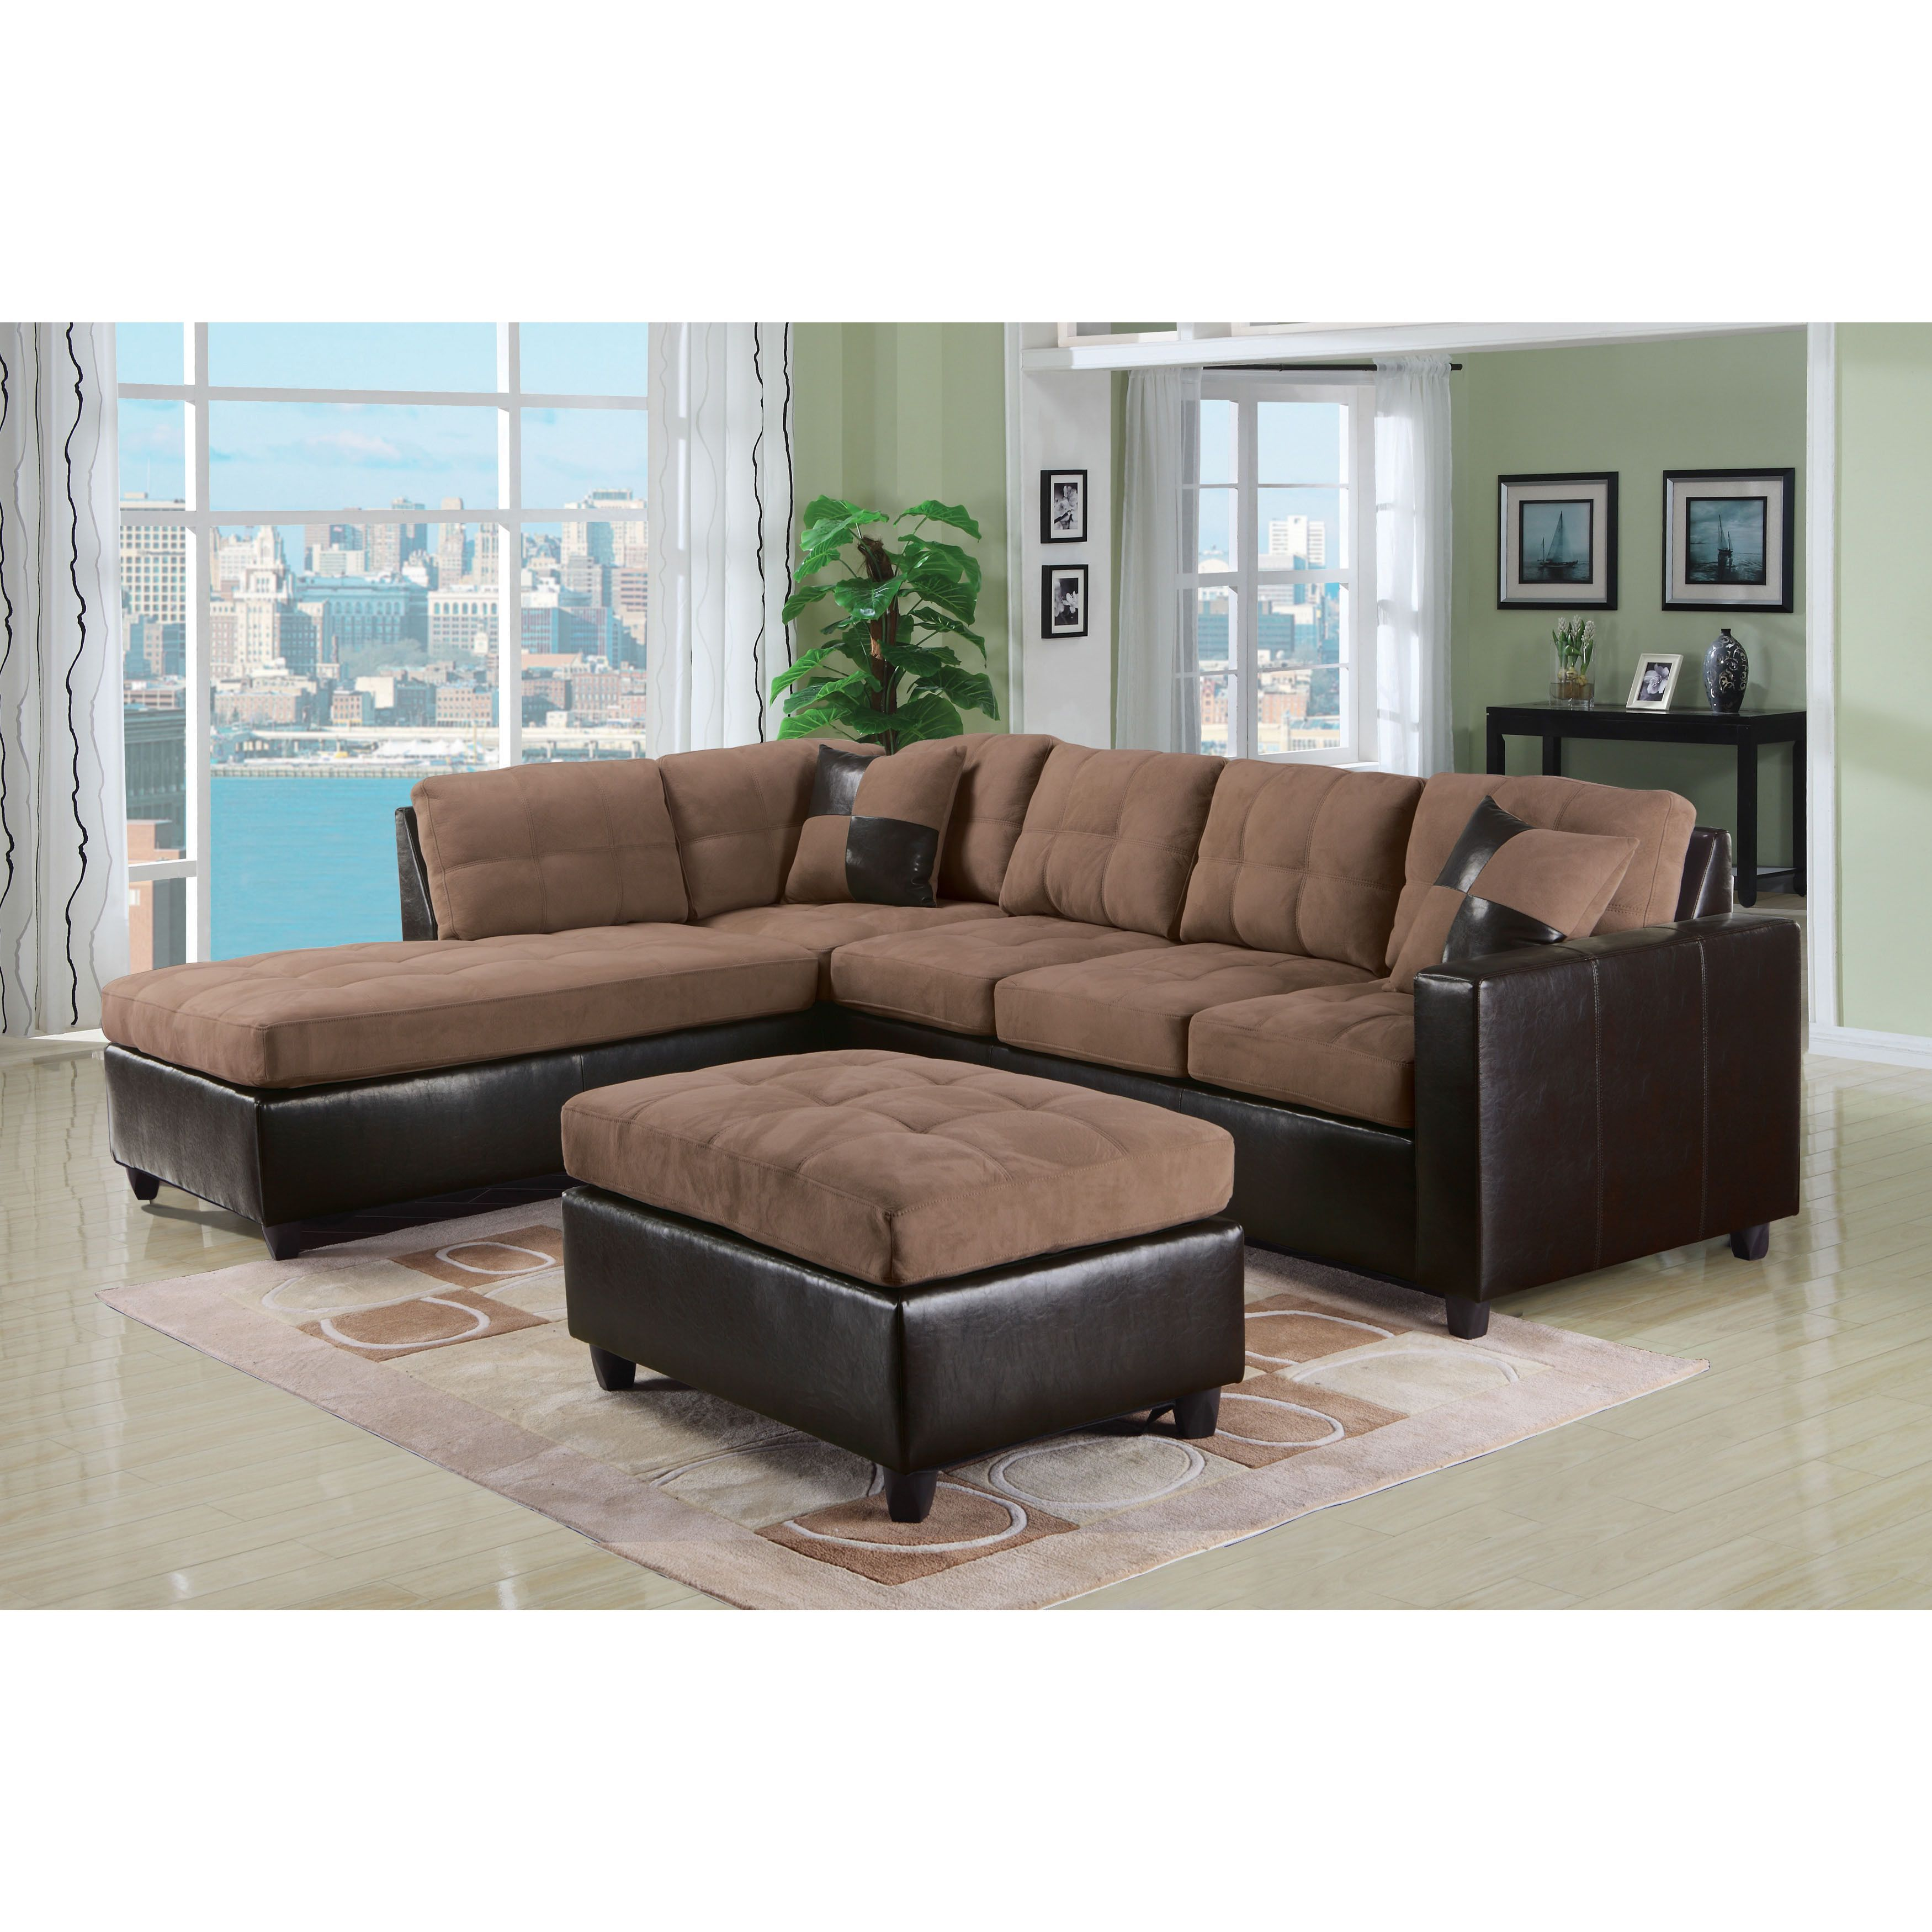 Overstock Com Online Shopping Bedding Furniture Electronics Jewelry Clothing More Sectional Sofa Sectional Sofa With Chaise Brown Sectional Sofa